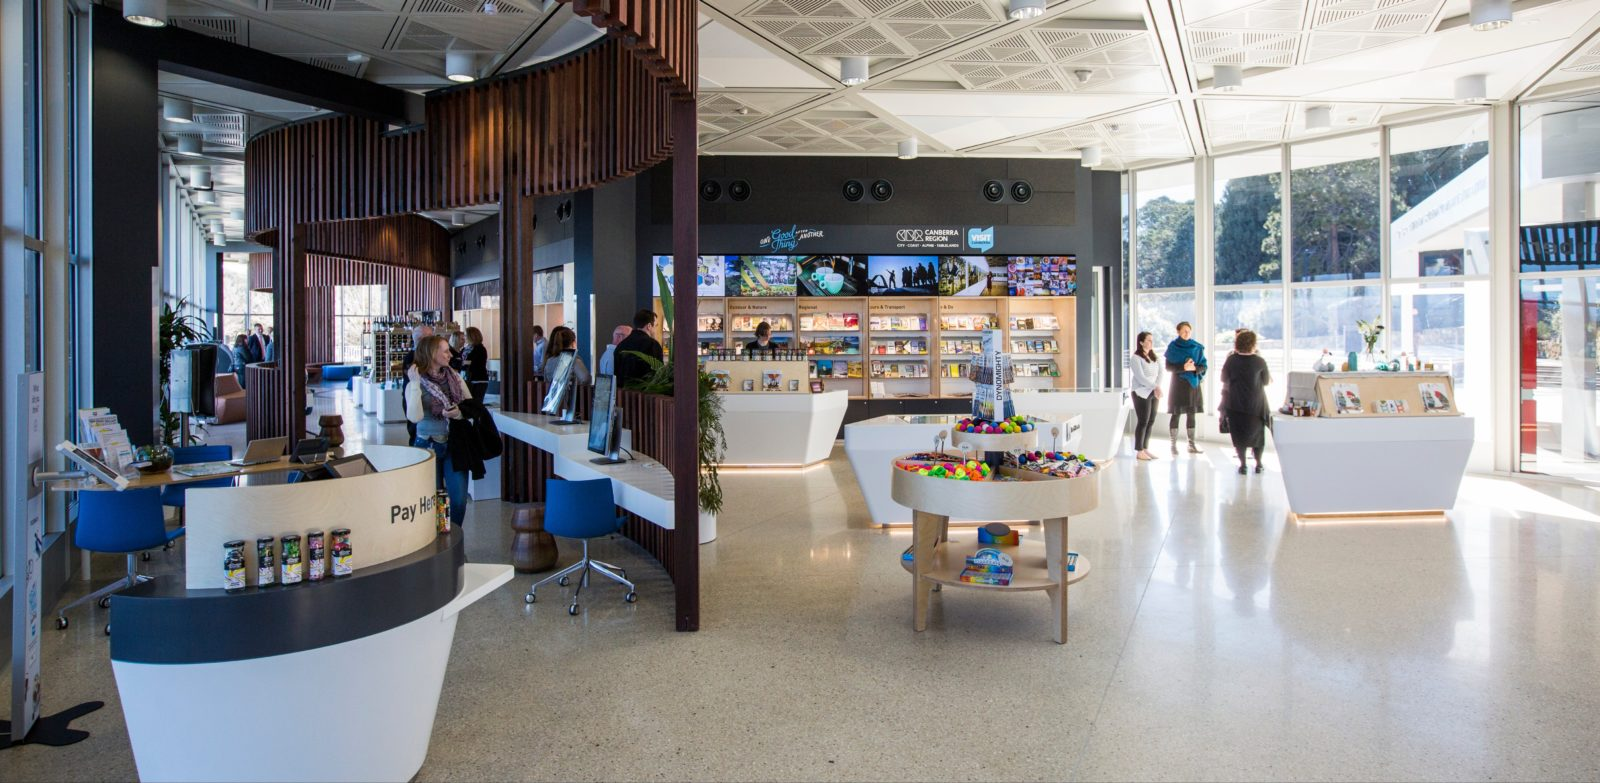 The Canberra and Region Visitors Centre interior